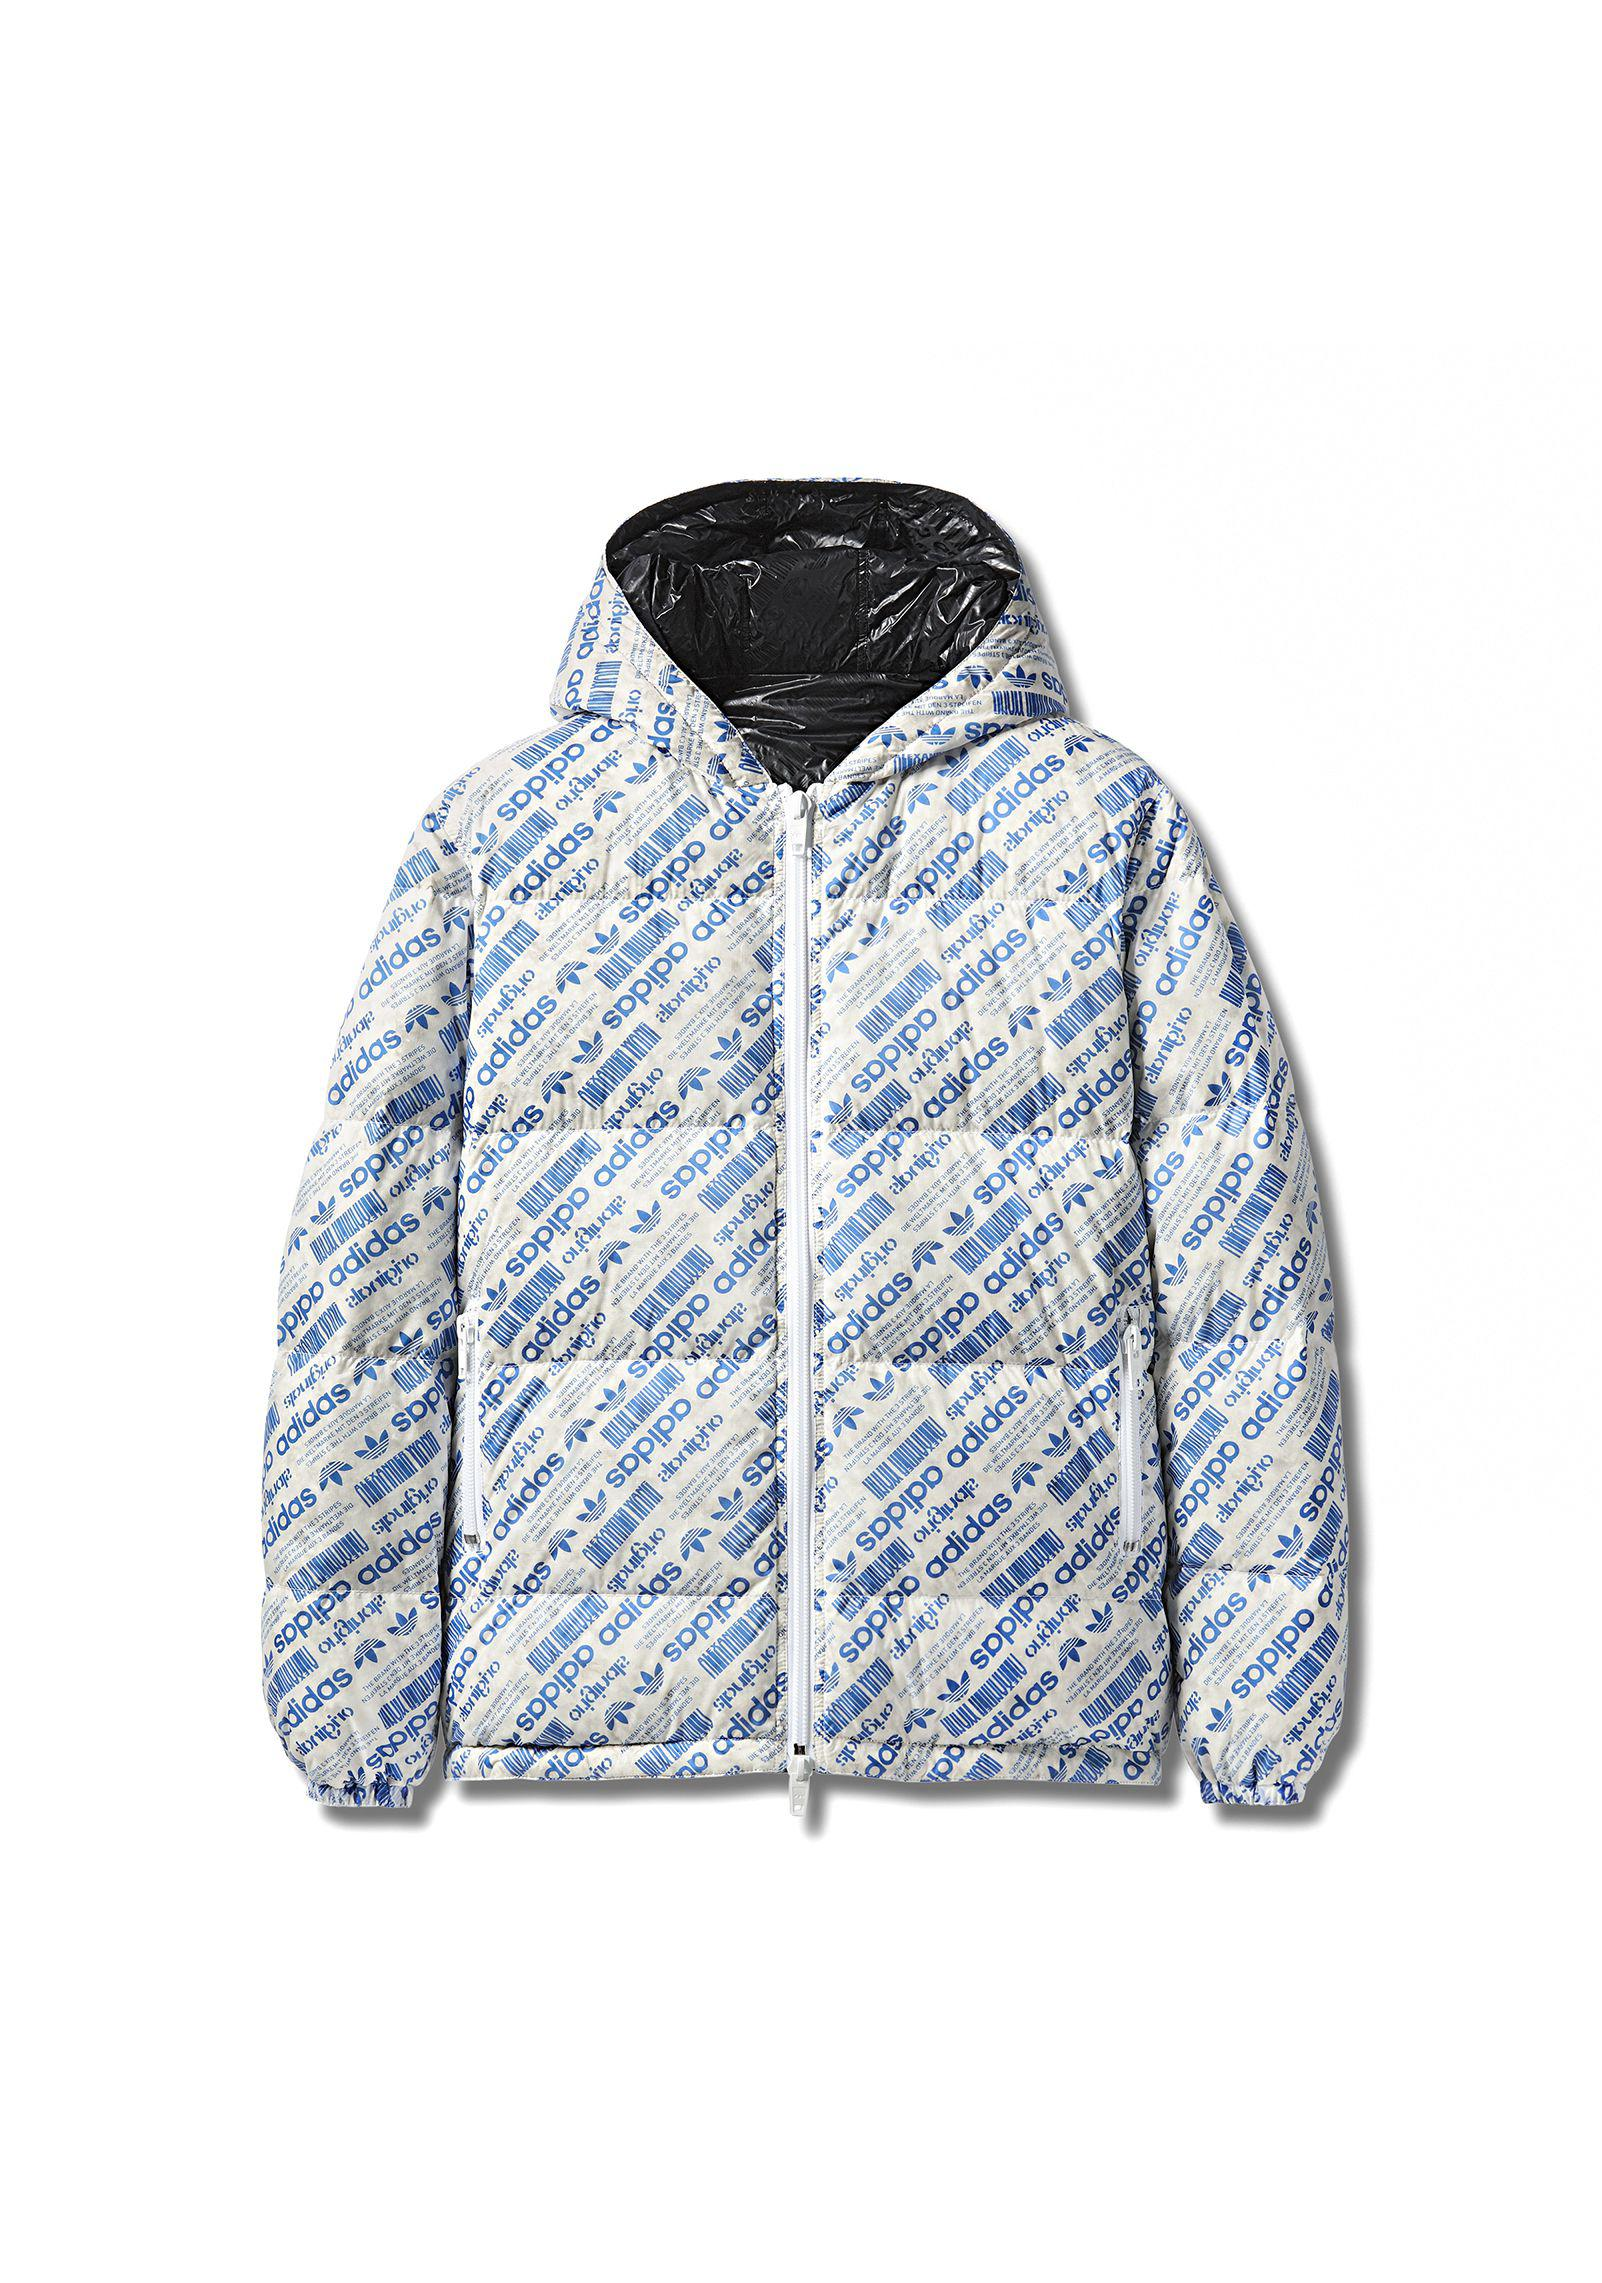 7ab5e56a22c Alexander Wang Adidas Originals By Aw Puffer in Gray - Lyst